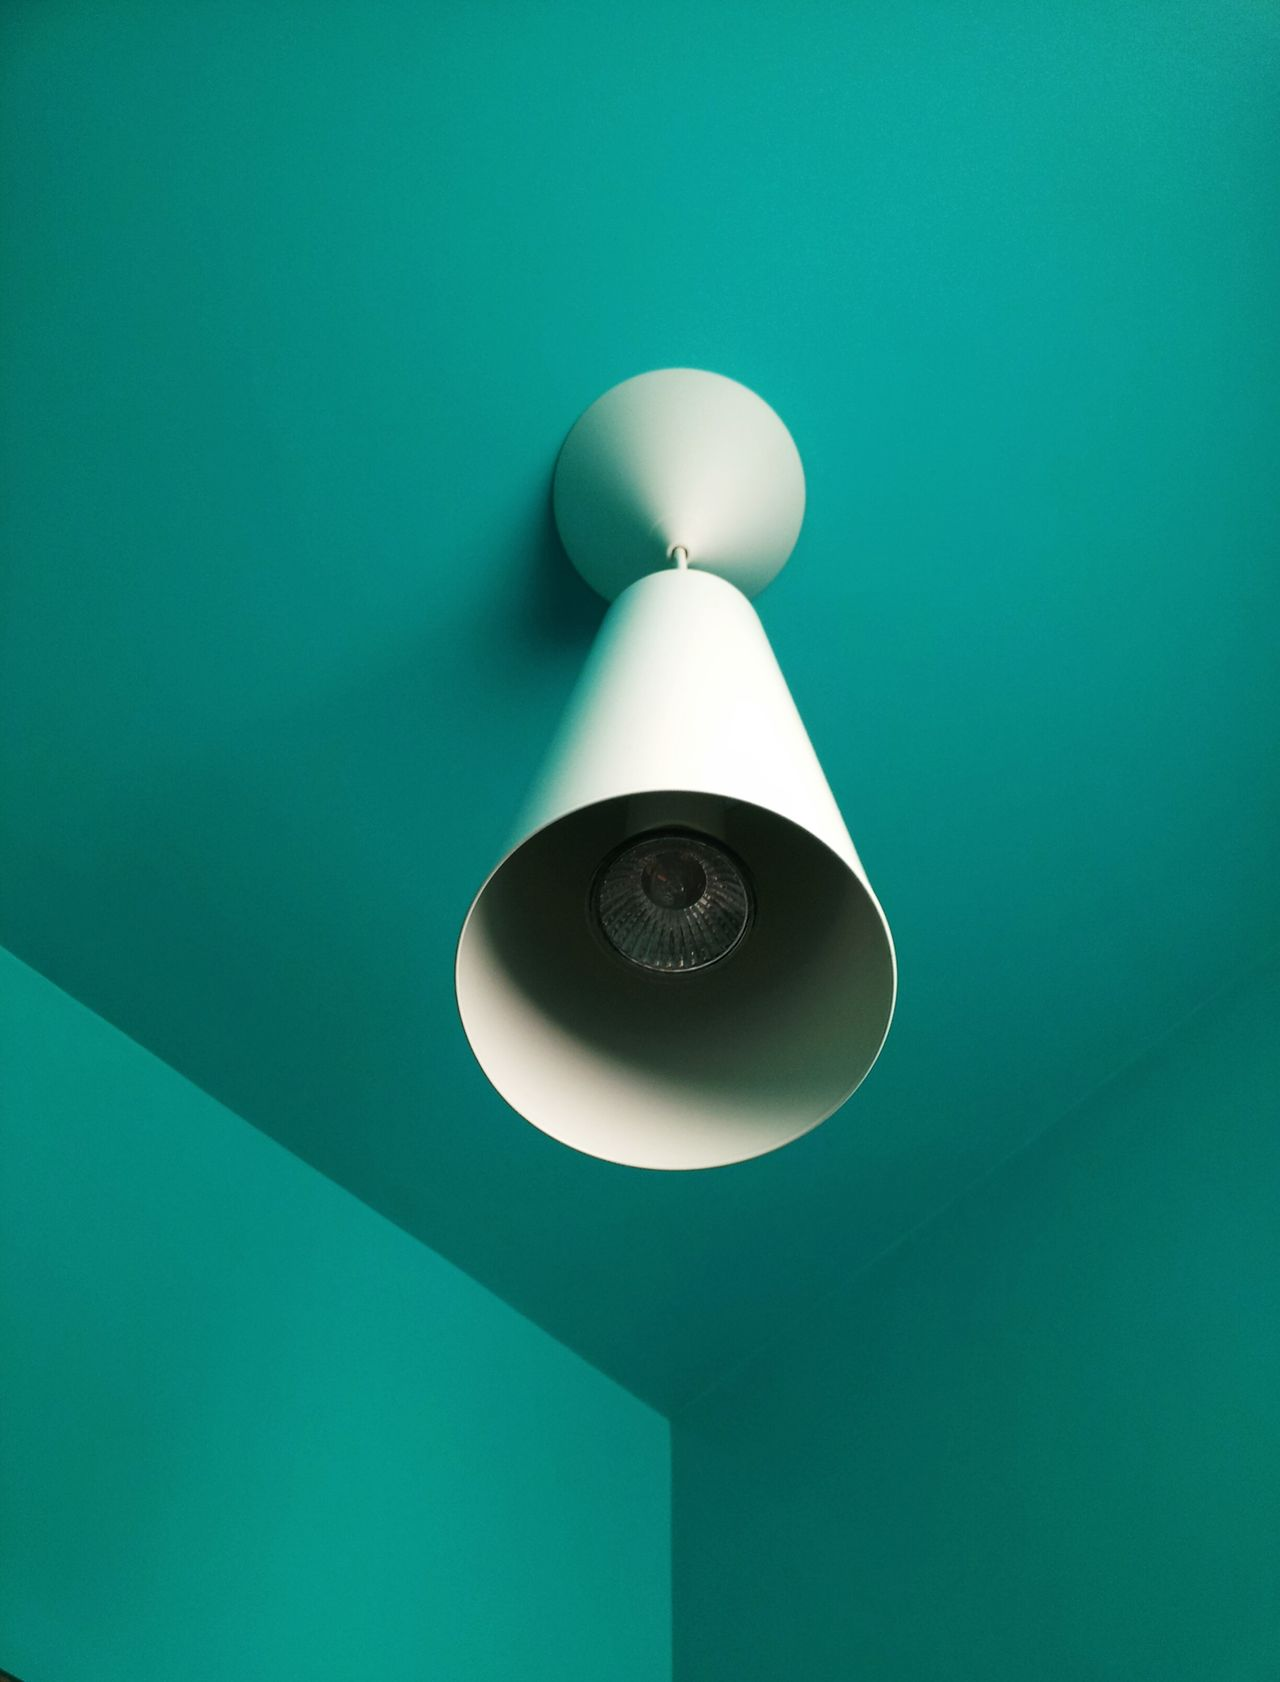 Low angle view of hanging light at turquoise colored ceiling